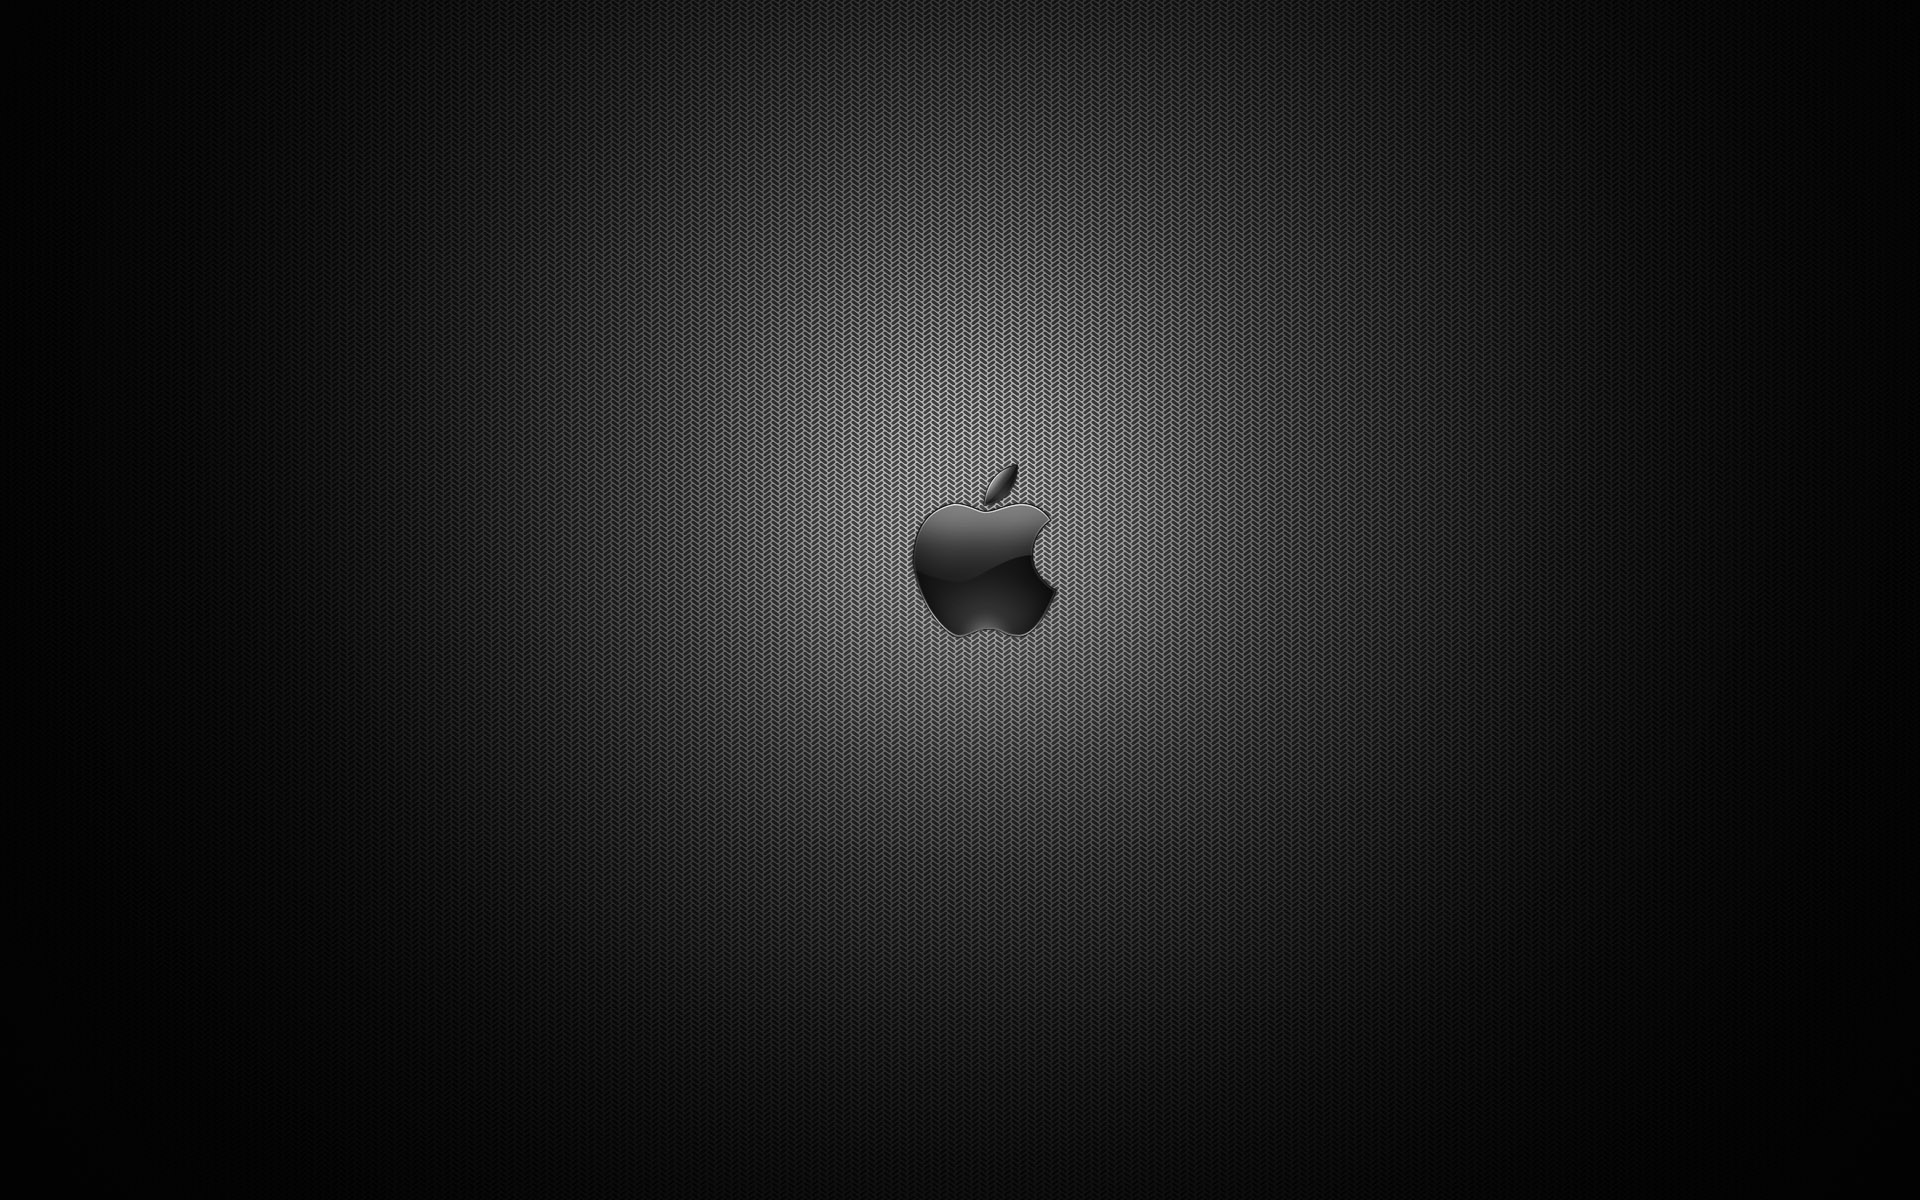 Black And White Apple HD Background Desktop 1796 Wallpaper 1920x1200